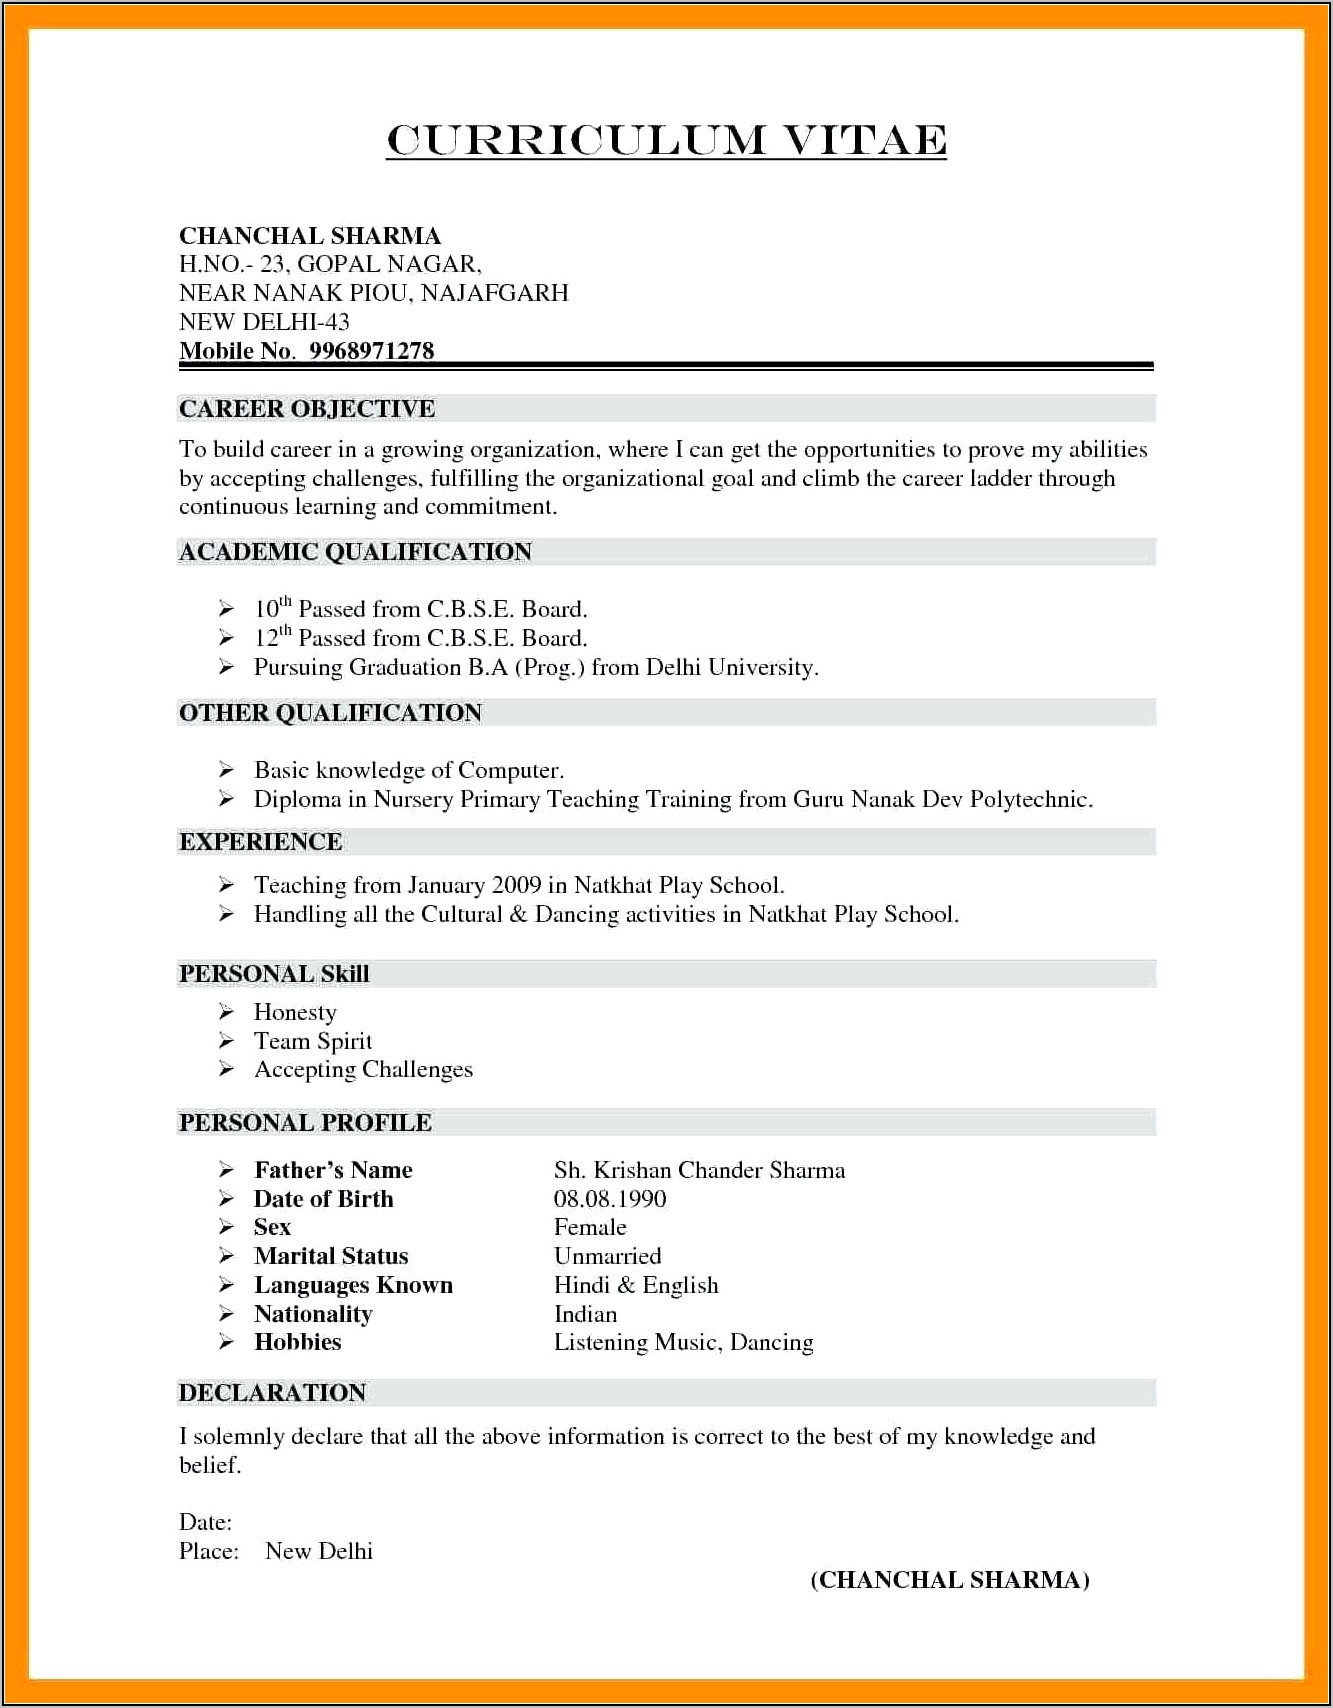 Resume Format Download In Ms Word India